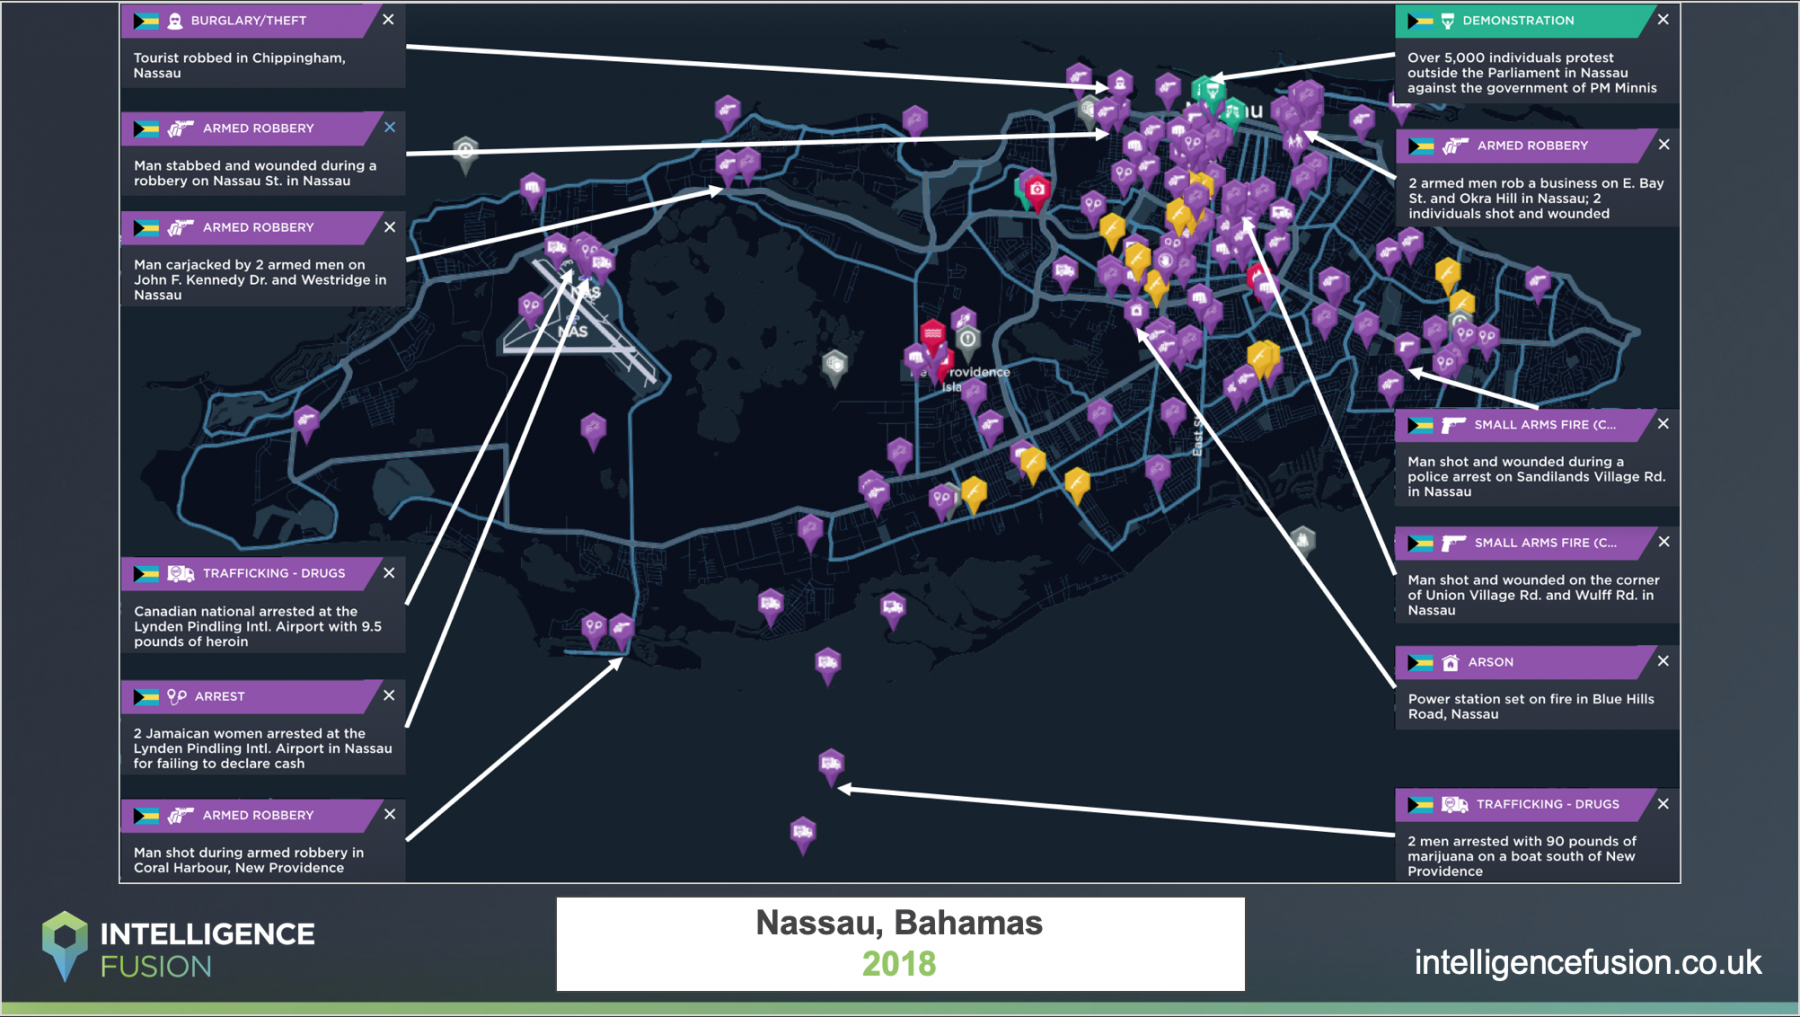 A map depicting the significant security incidents in Nassau, Bahamas